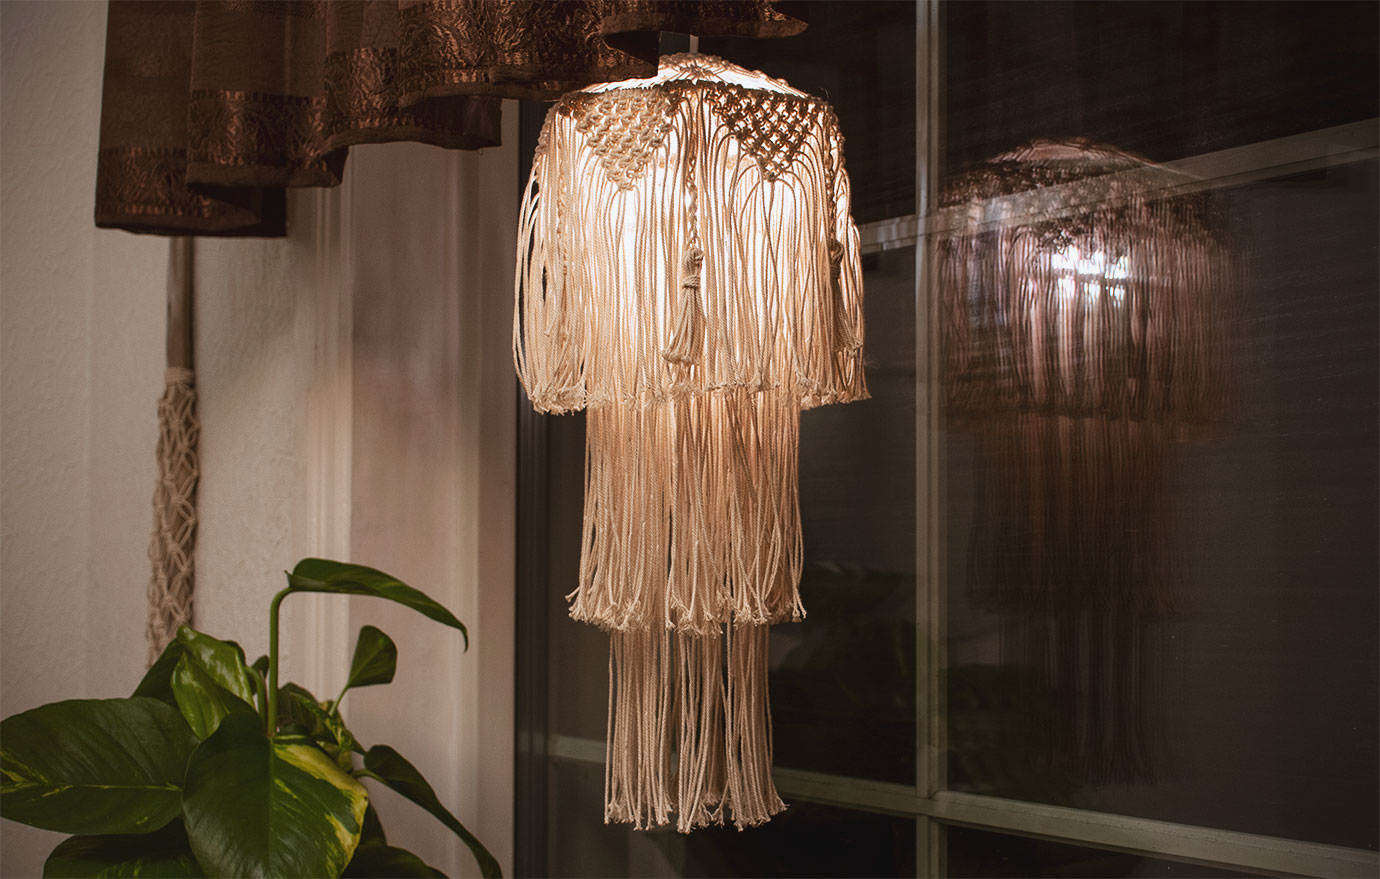 My first handmade macrame lampshade